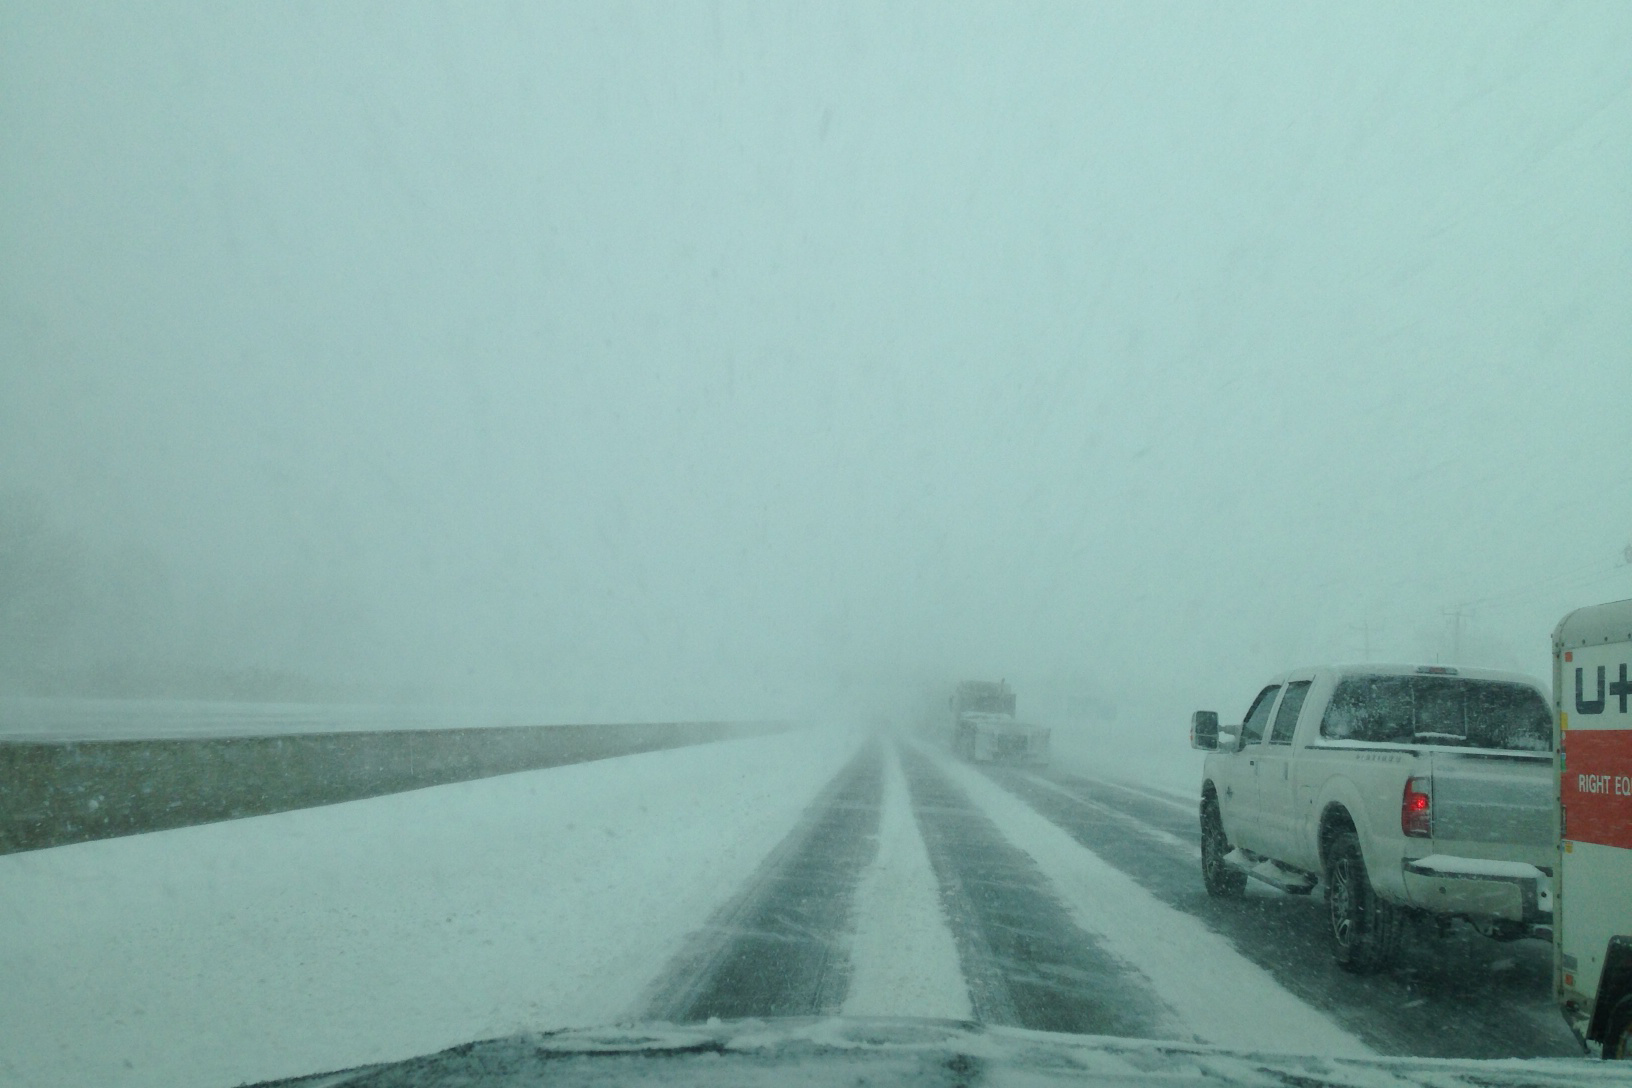 Attention travellers: Snow squalls along Hwy. 400 corridor